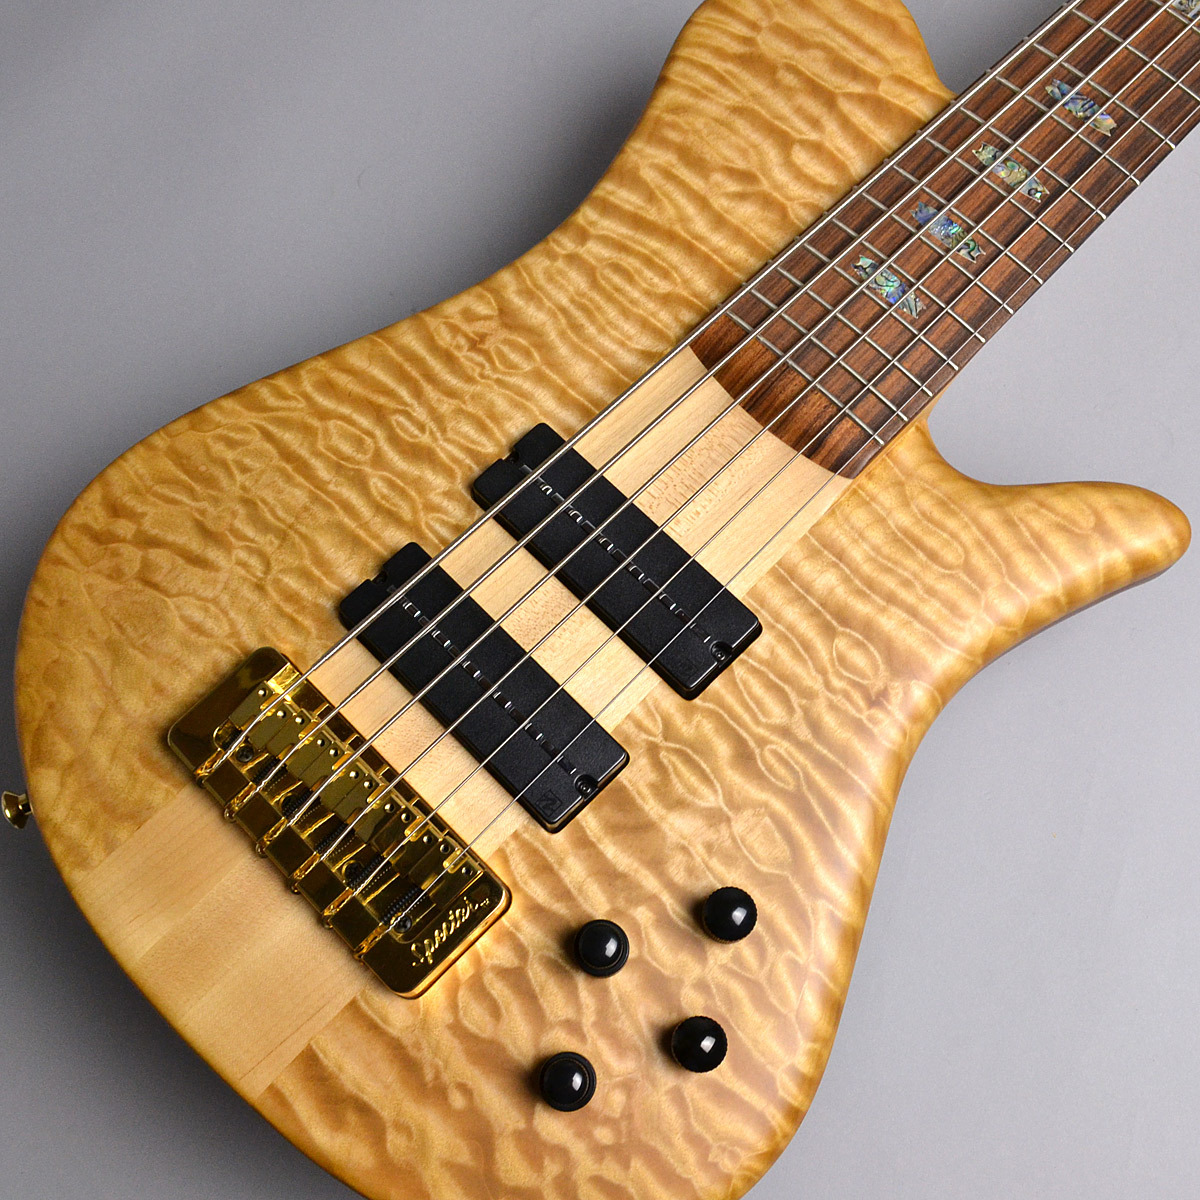 Spector NS6XL SC/5A Quilted Maple Top #004 エレキベース(6弦) 【スペクター】【新宿PePe店】【USA製】【限定特価】